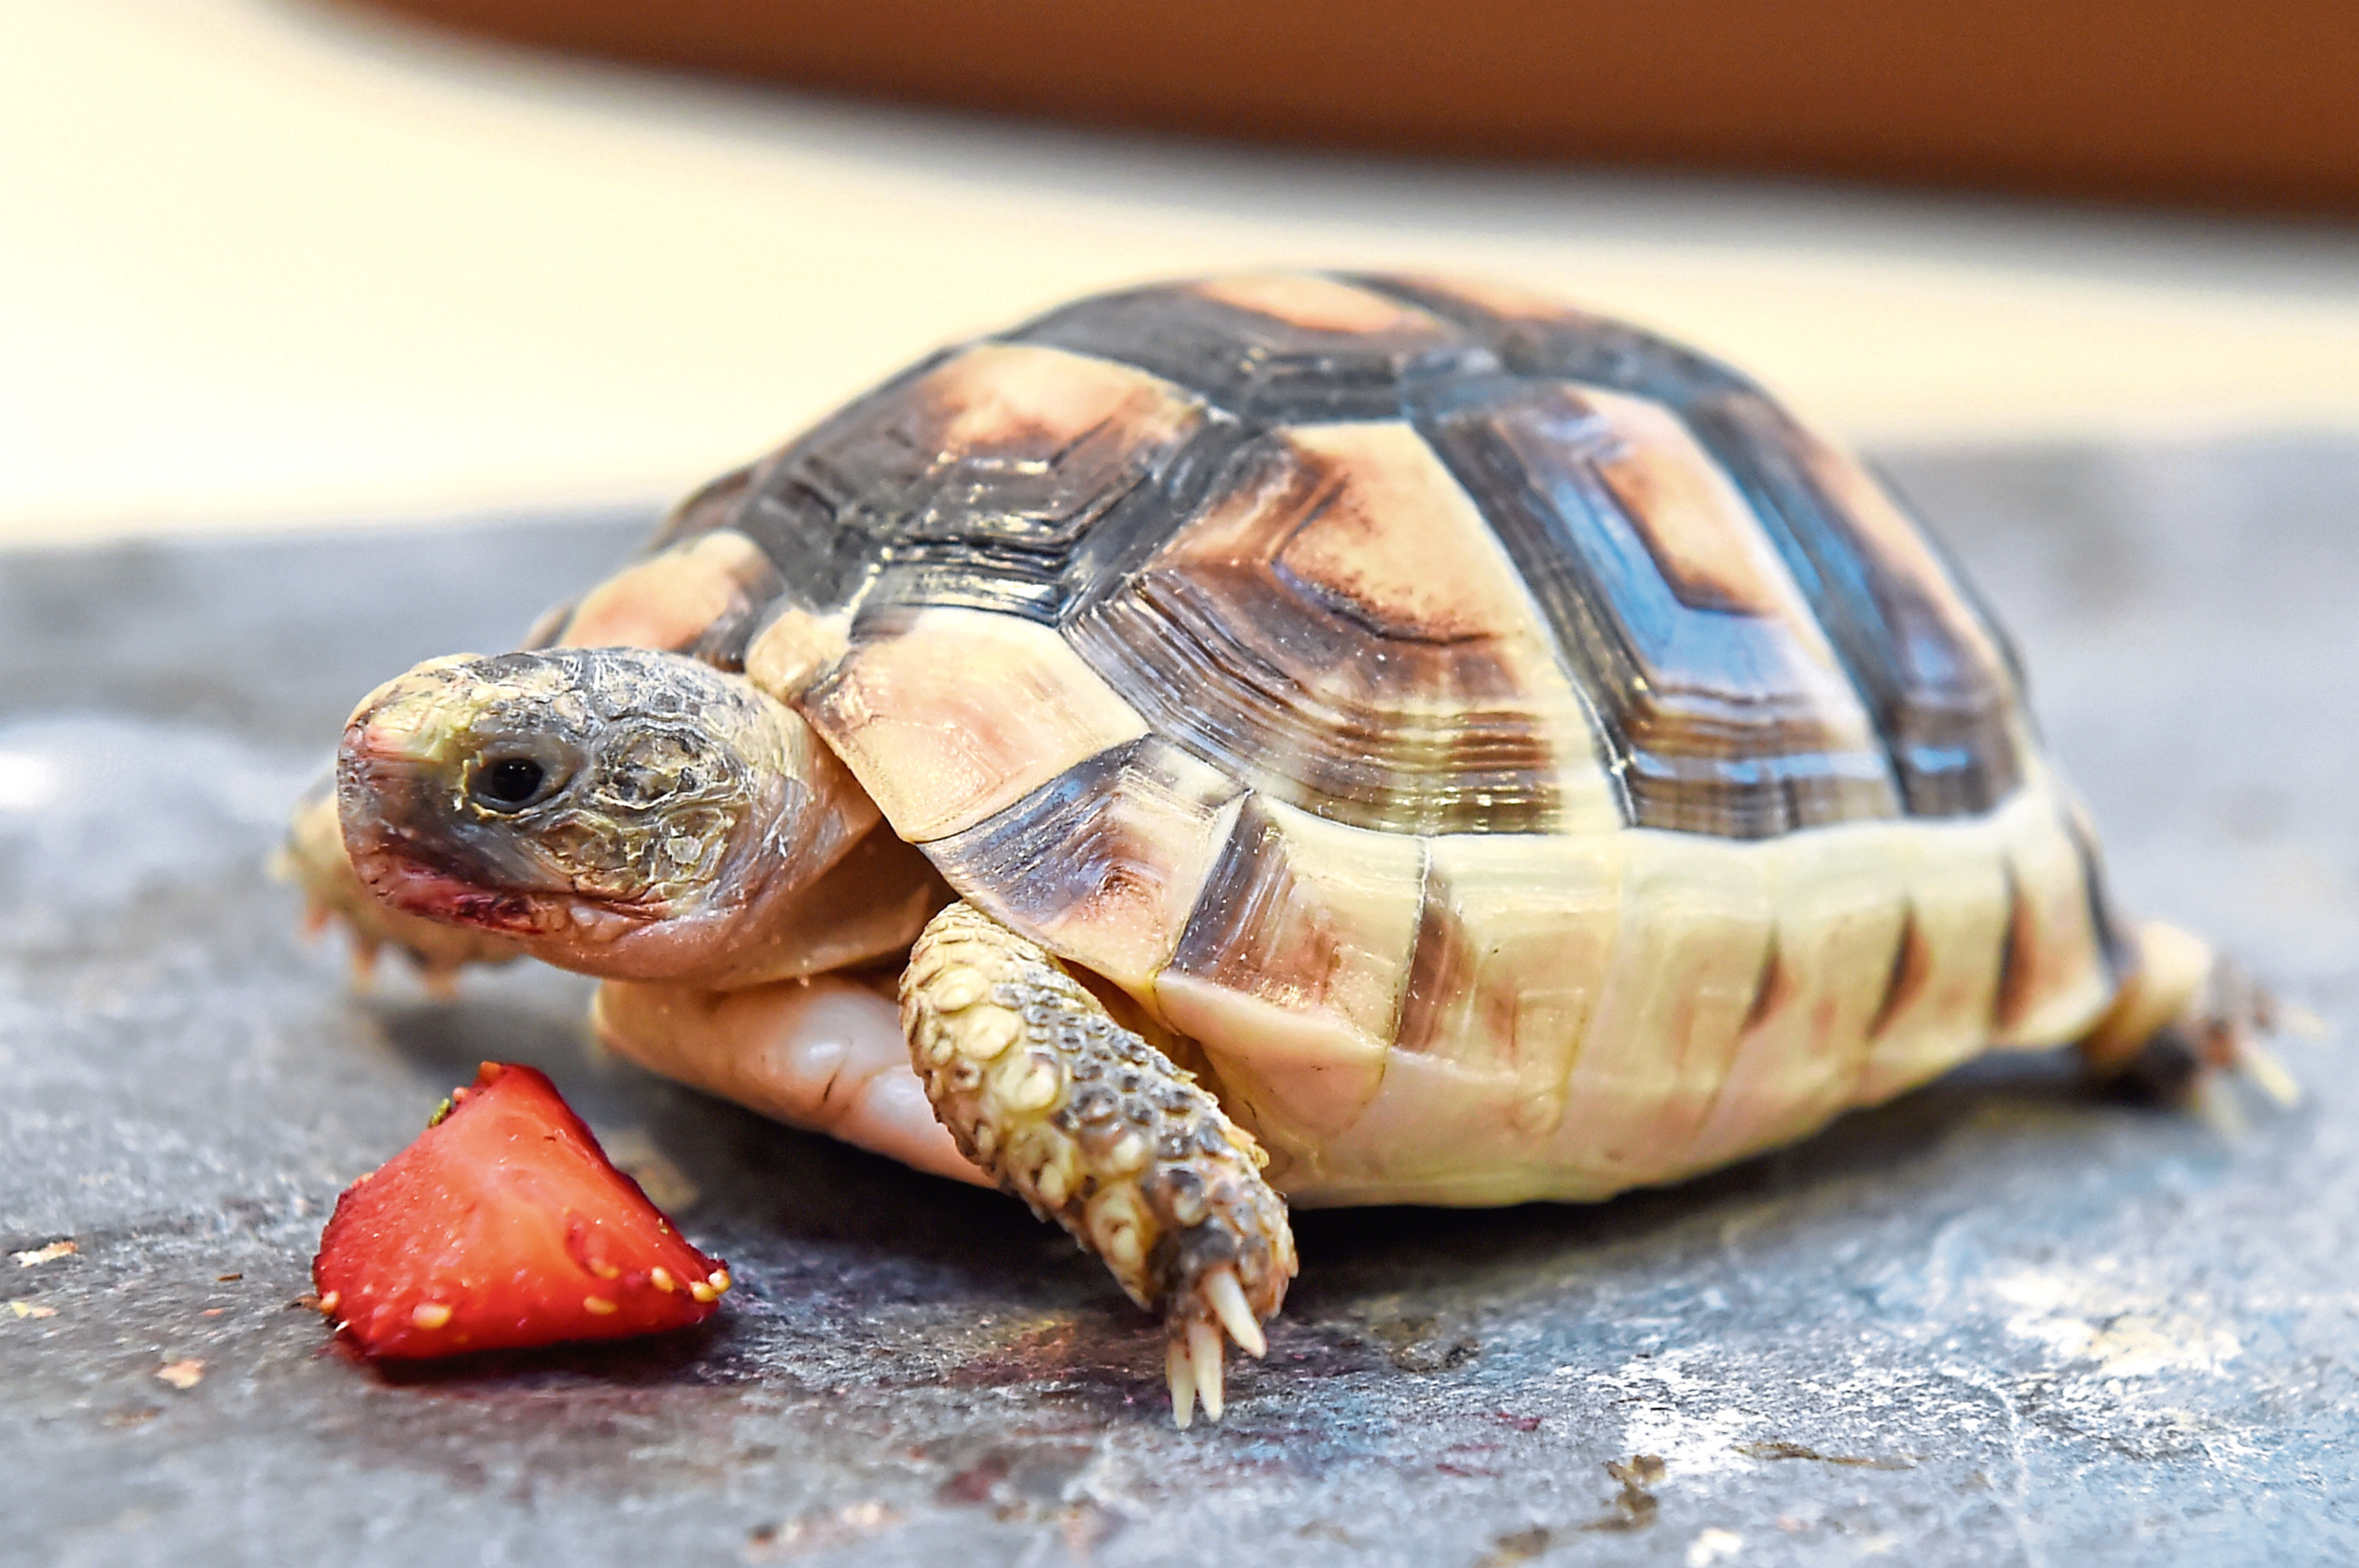 Meshell the tortoise. Picture by Kenny Elrick